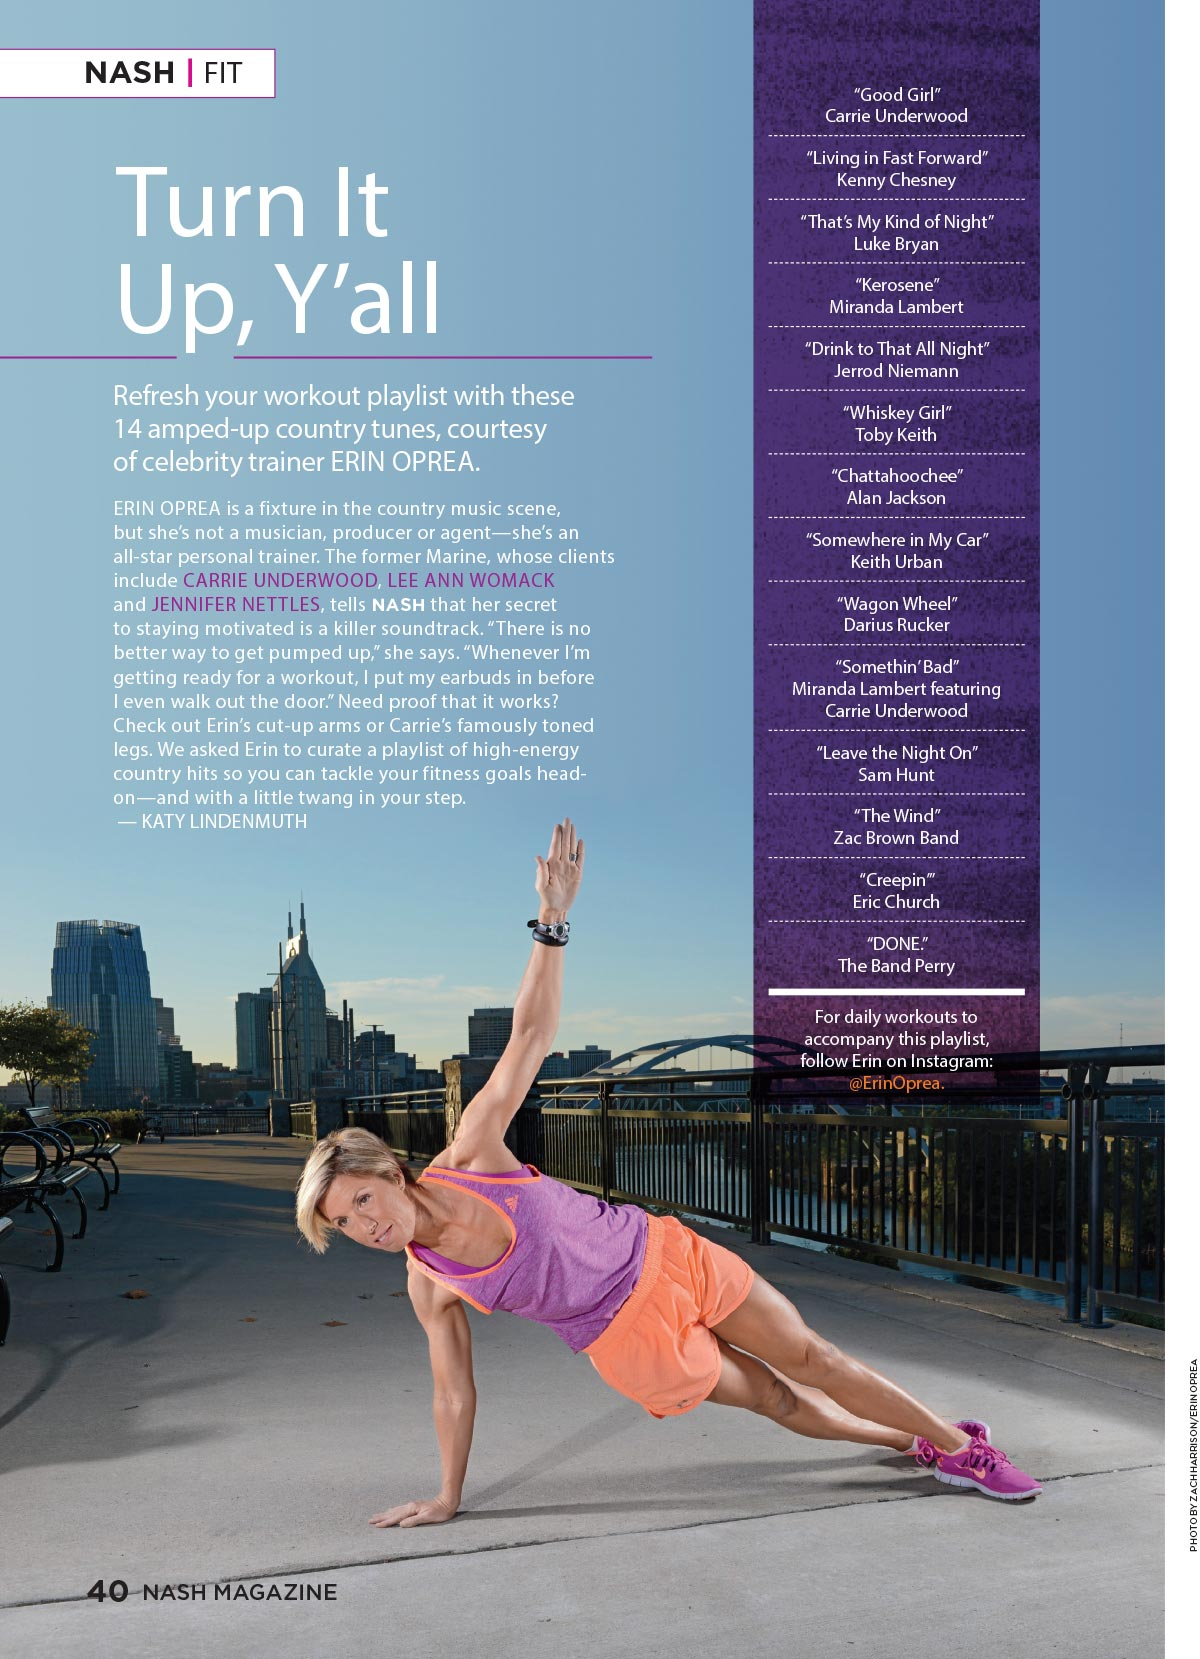 Turn It Up, Y'all: A Country Music Workout Playlist by Celebrity Trainer Erin Oprea